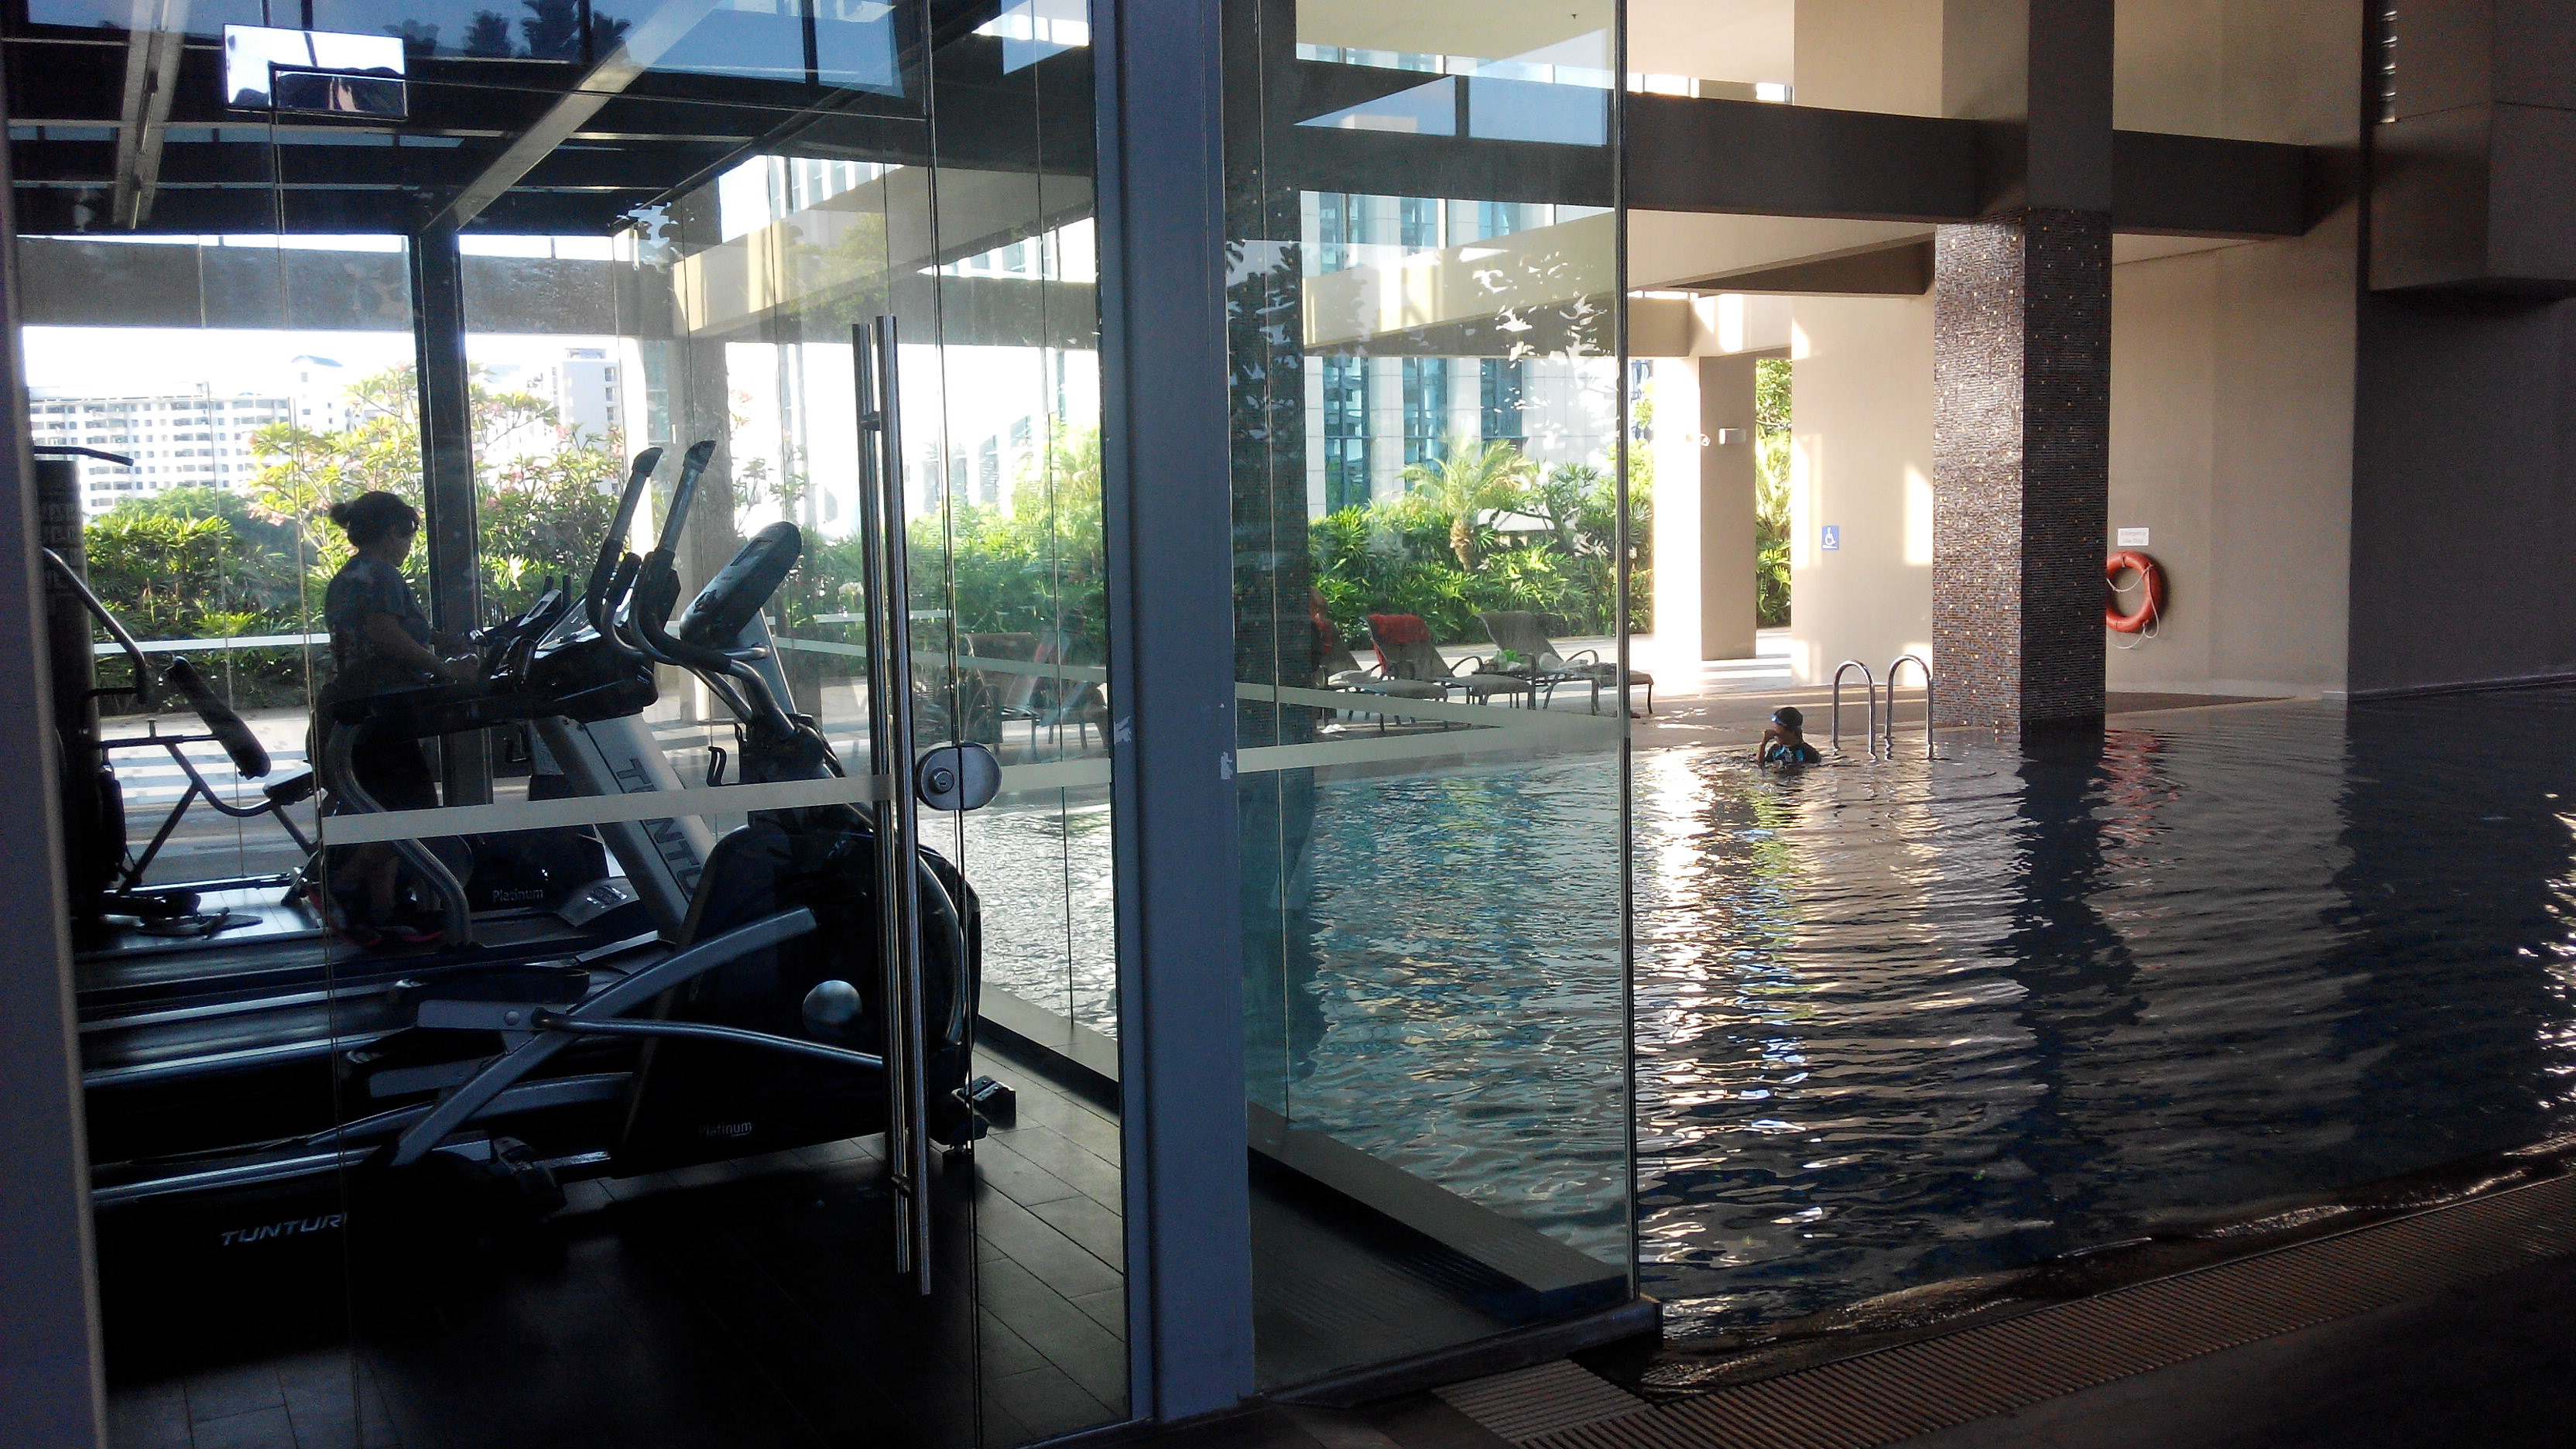 3 - Fitness first swimming pool singapore ...